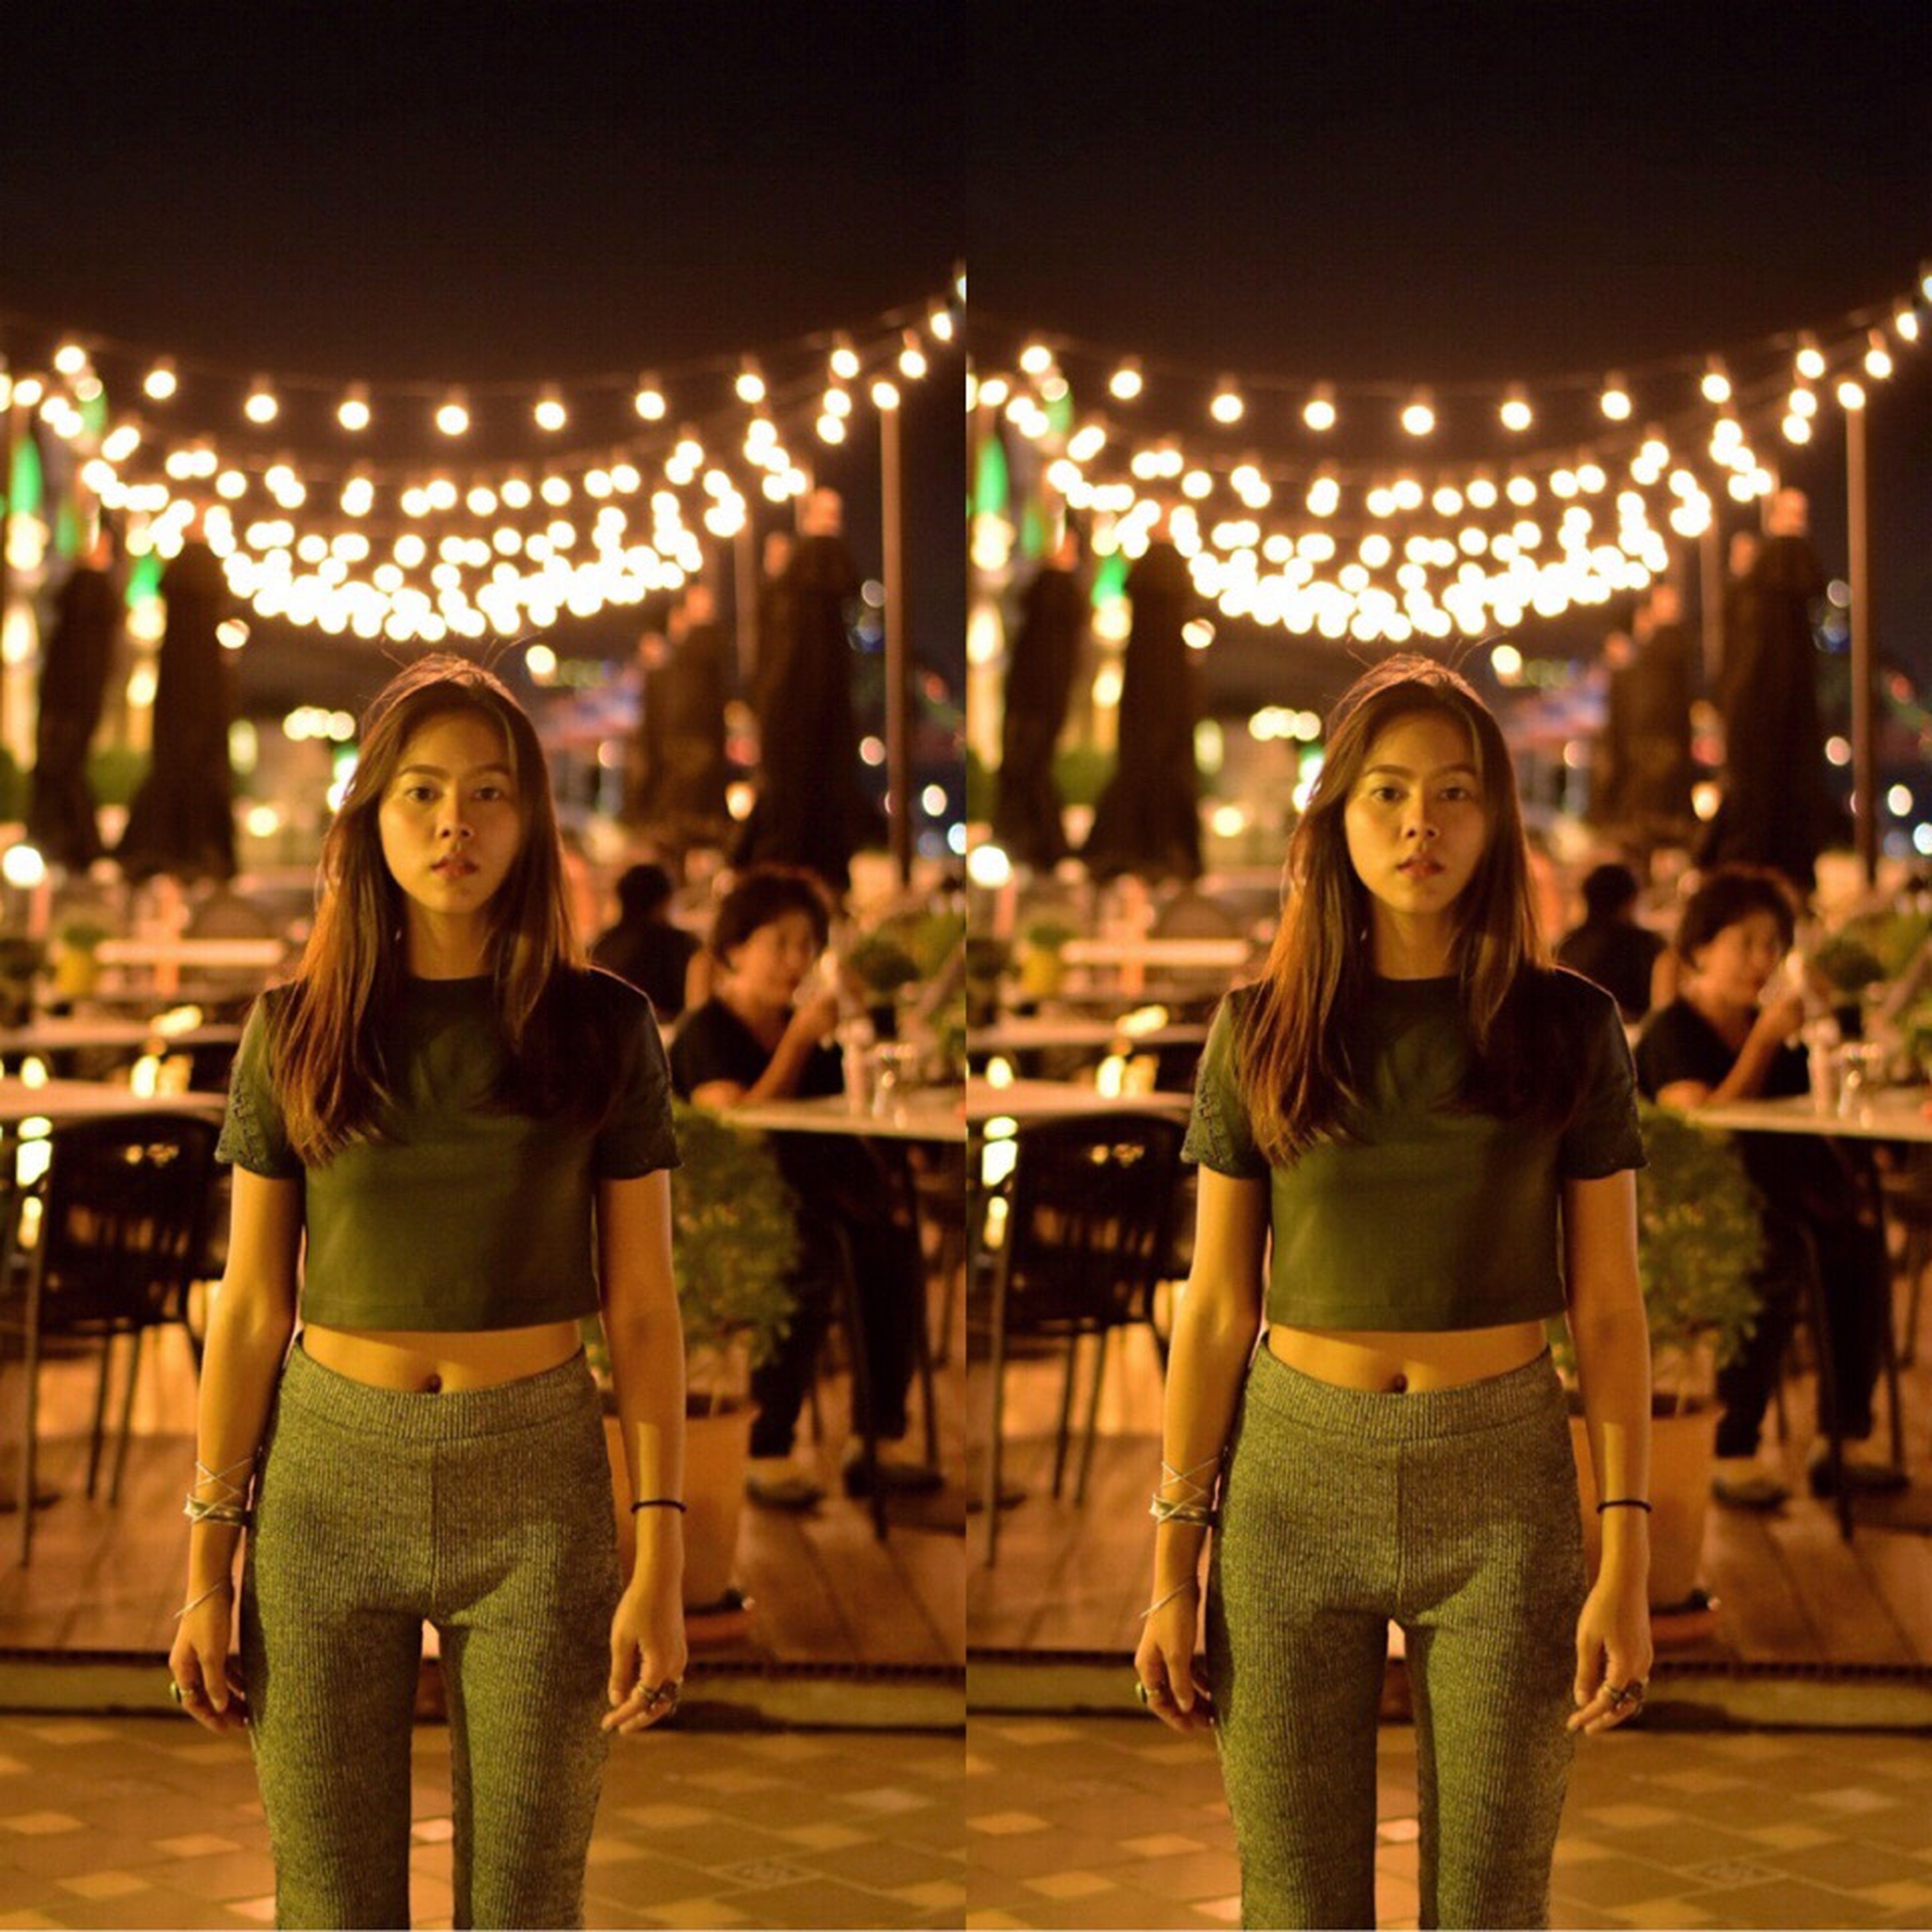 illuminated, leisure activity, standing, person, smiling, lighting equipment, happiness, lifestyles, night, young adult, casual clothing, celebration, front view, young women, looking at camera, focus on foreground, decoration, electric light, culture